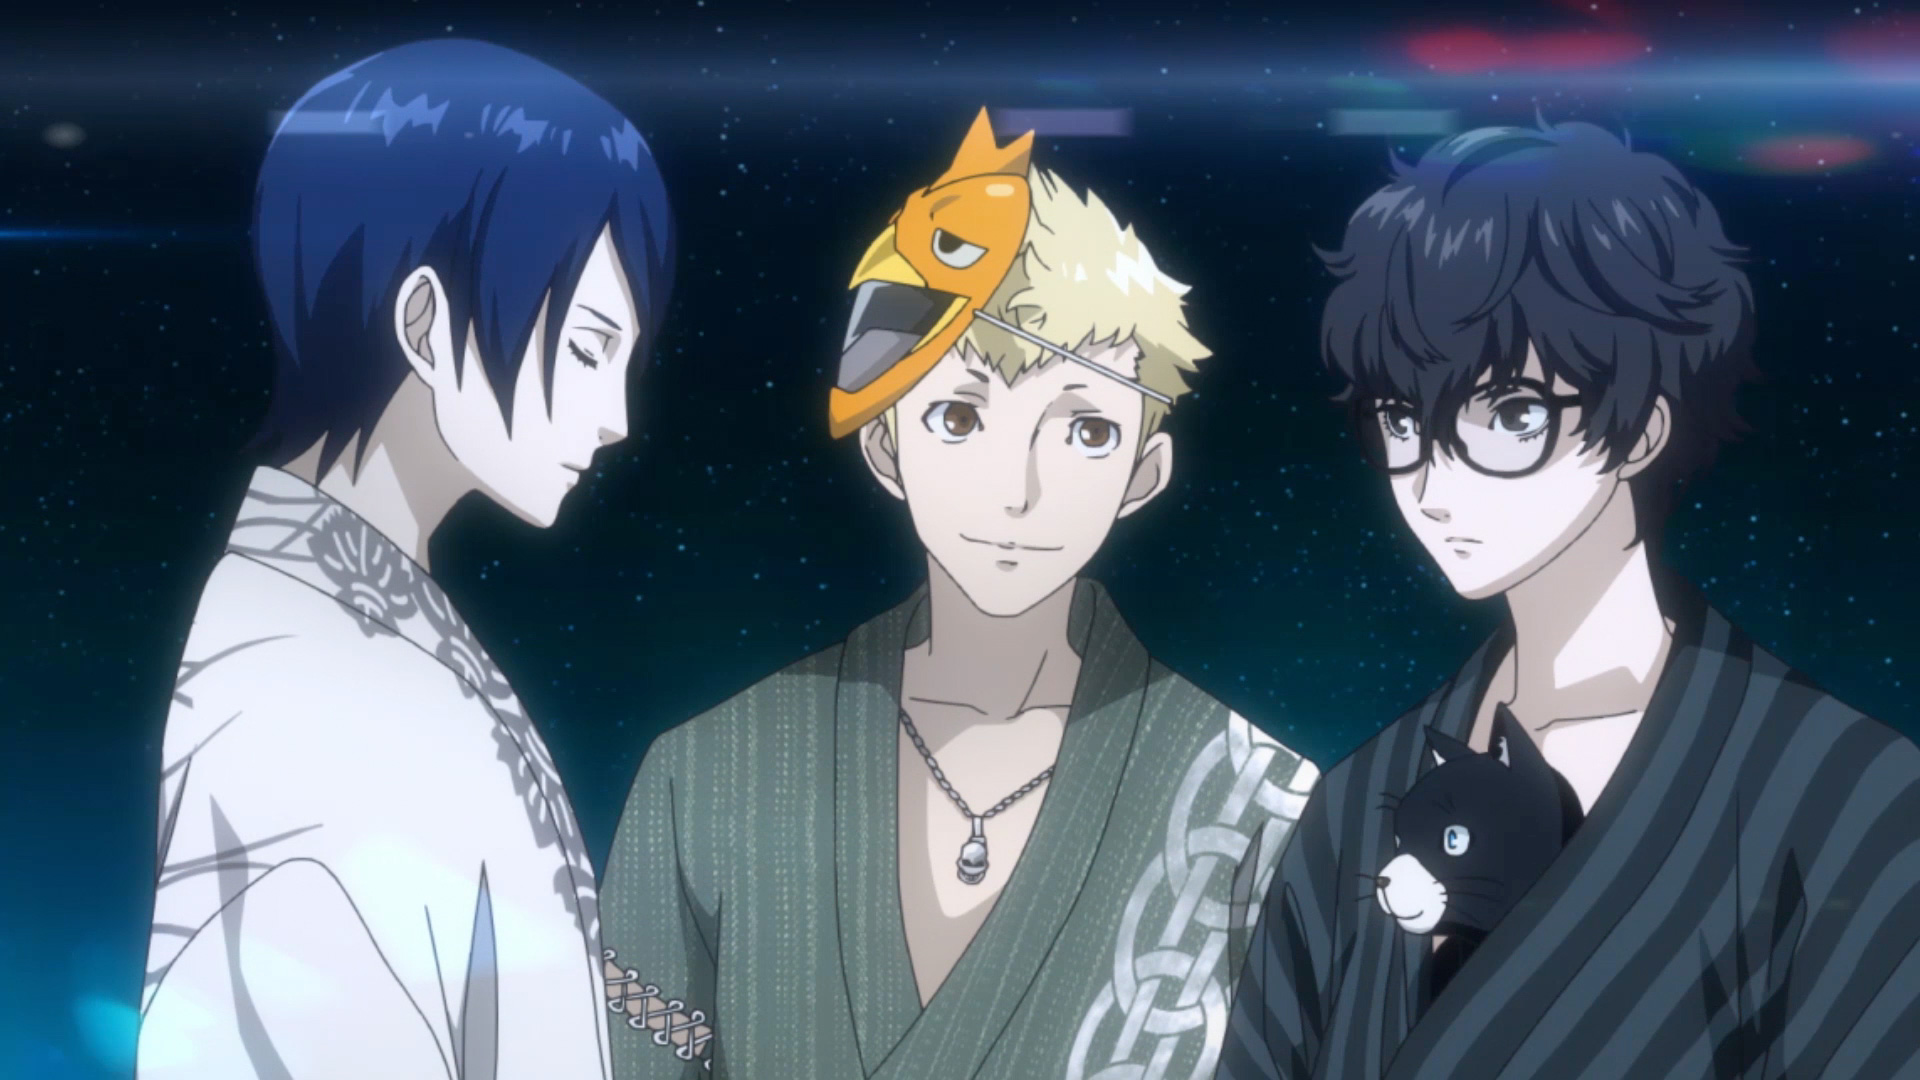 Three main characters share a quiet moment together in Persona 5 Strikers.